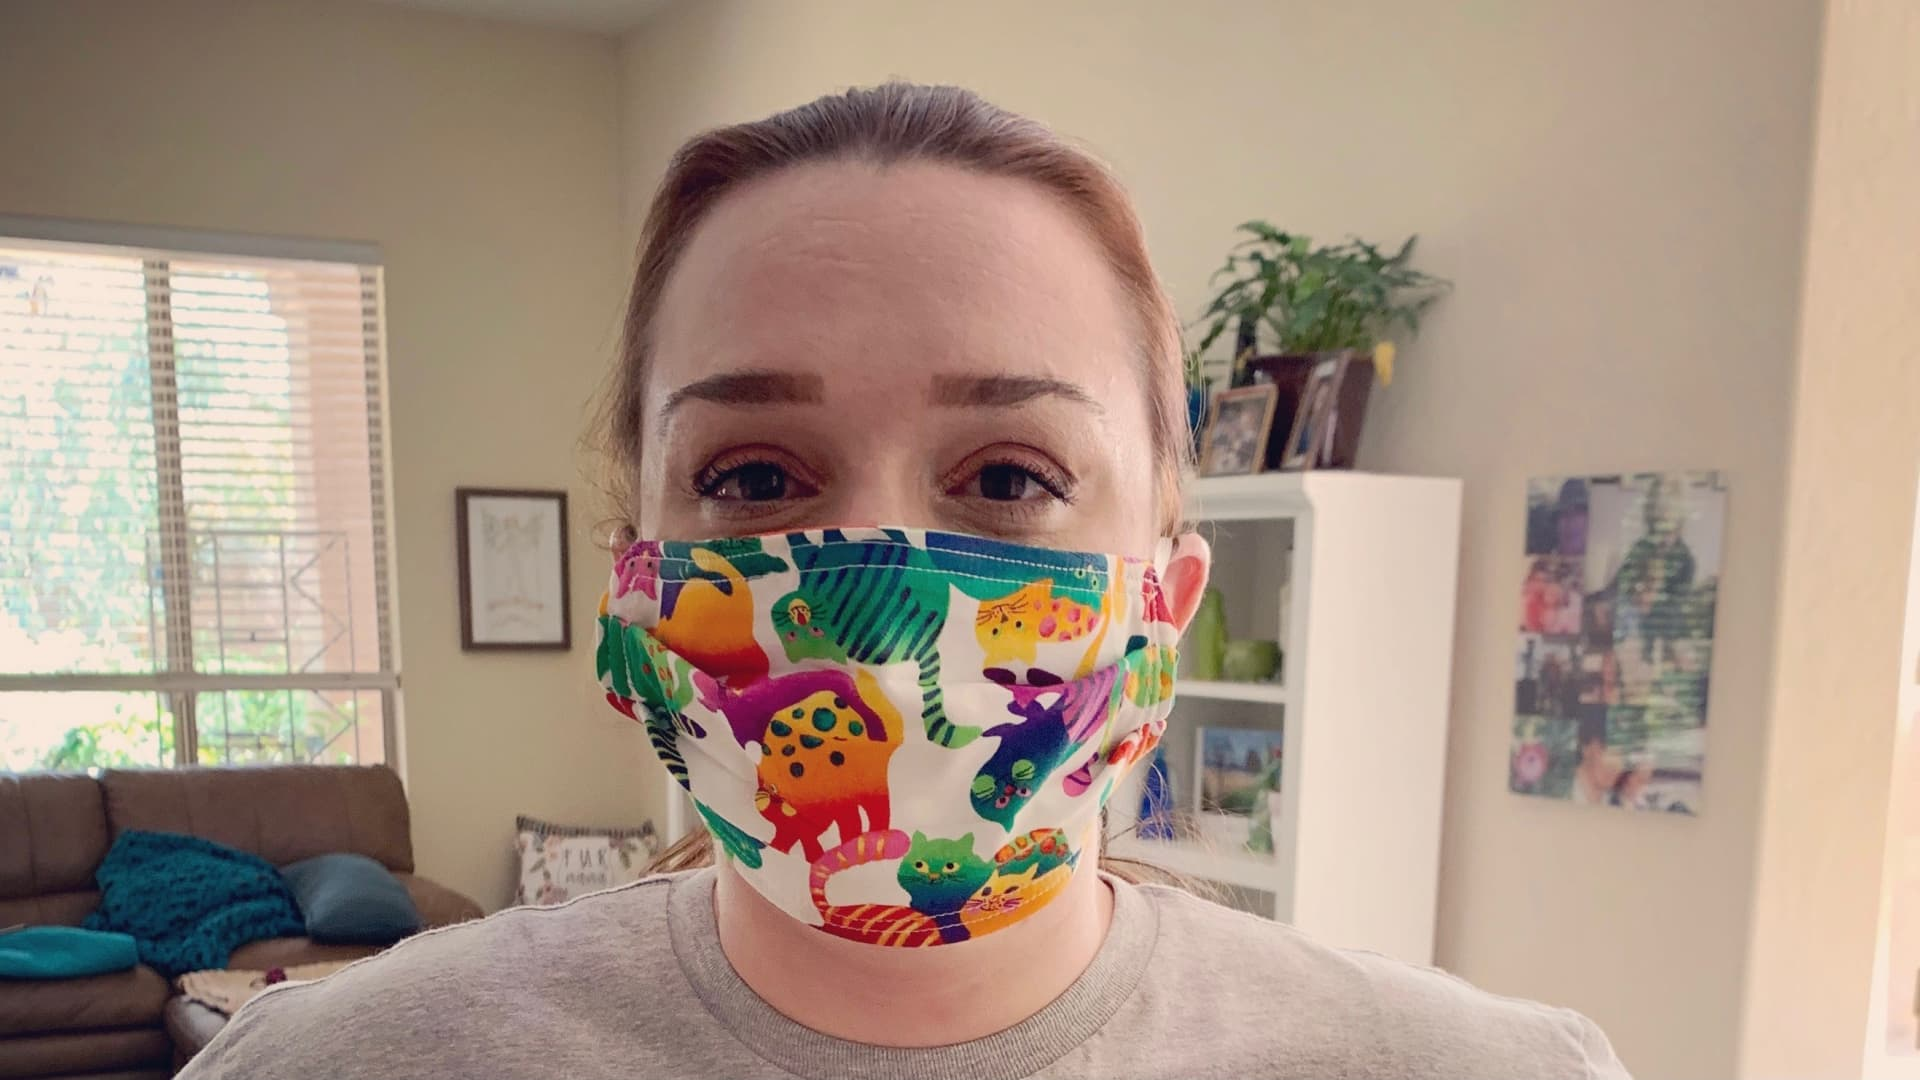 Lindsey Gamard, 38, quit her job at a technology company during the pandemic.